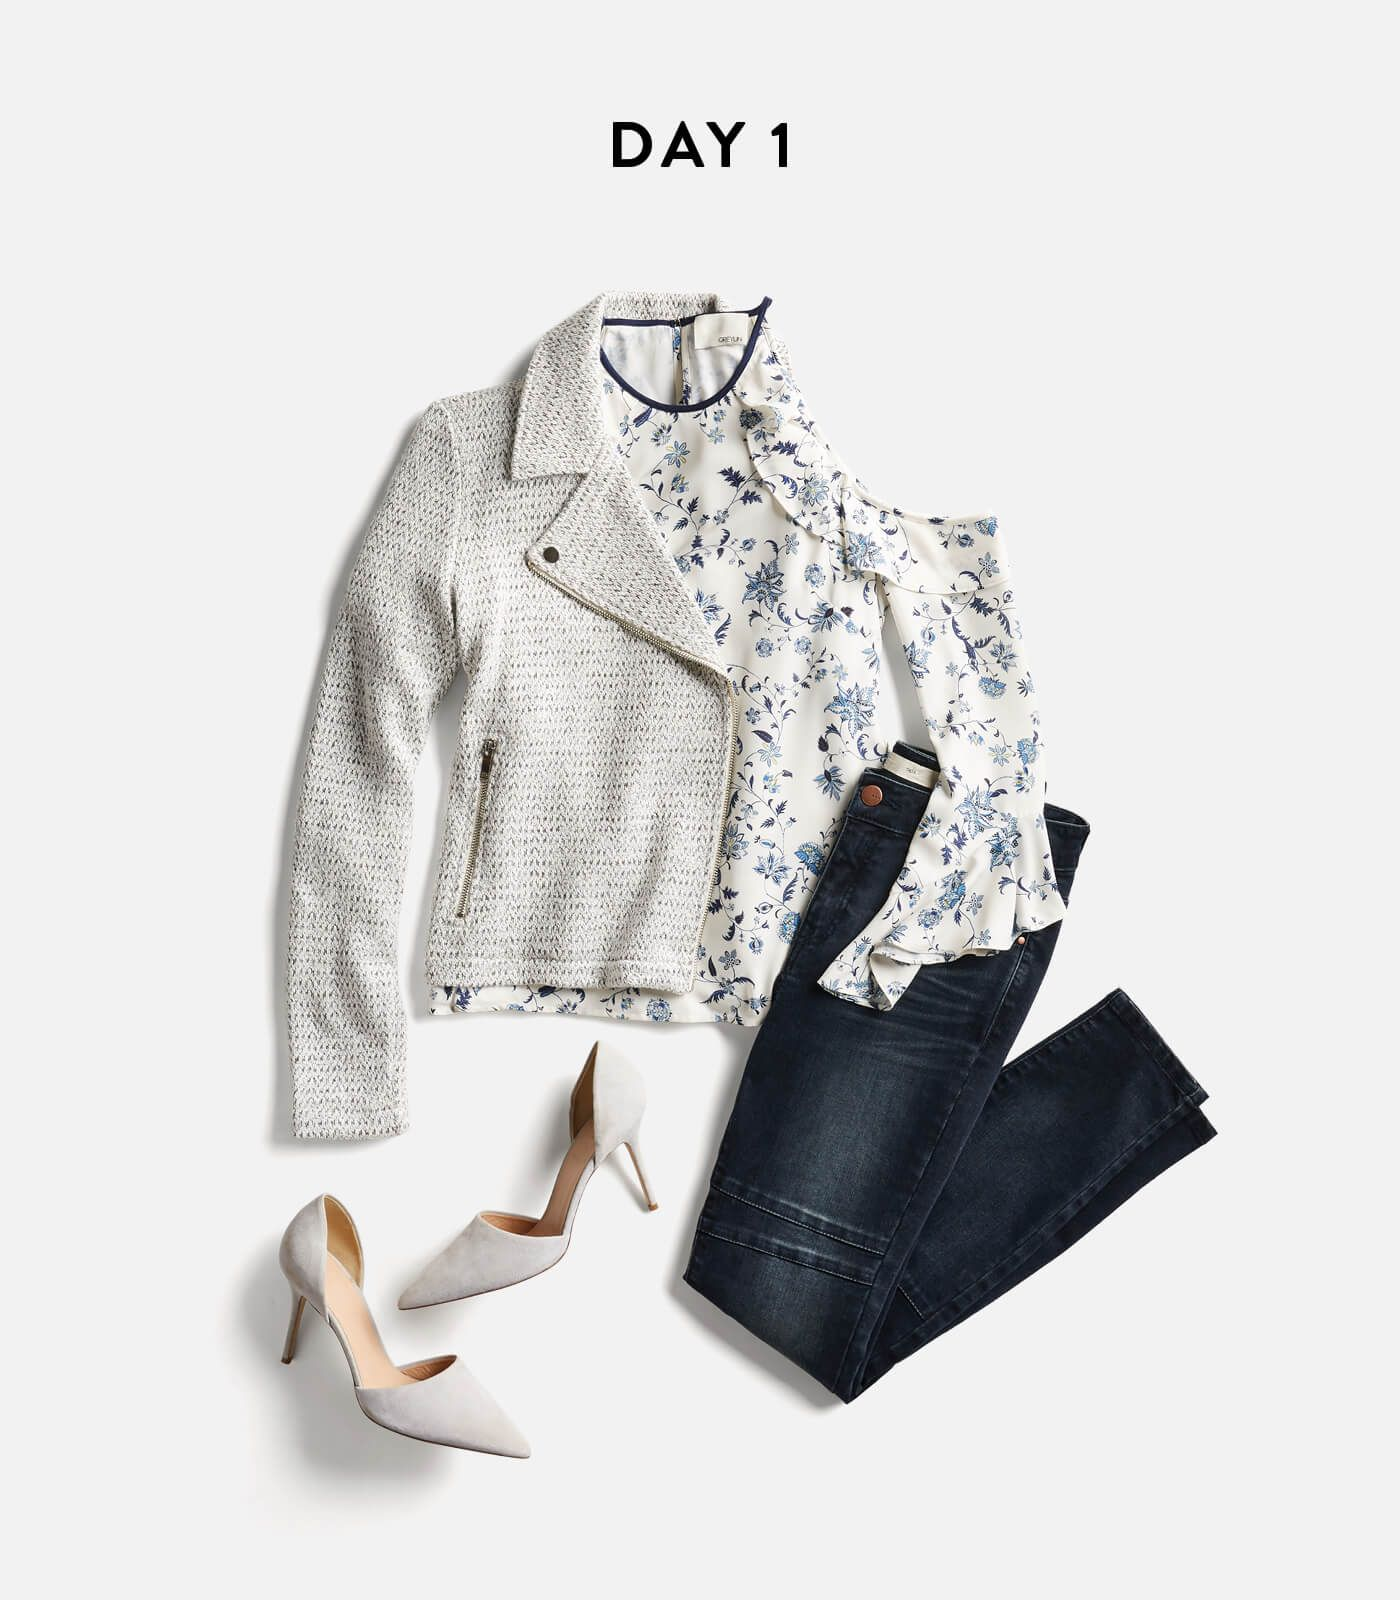 MORE: 31 Days Of Style: A Month Of Outfits To Wear Now